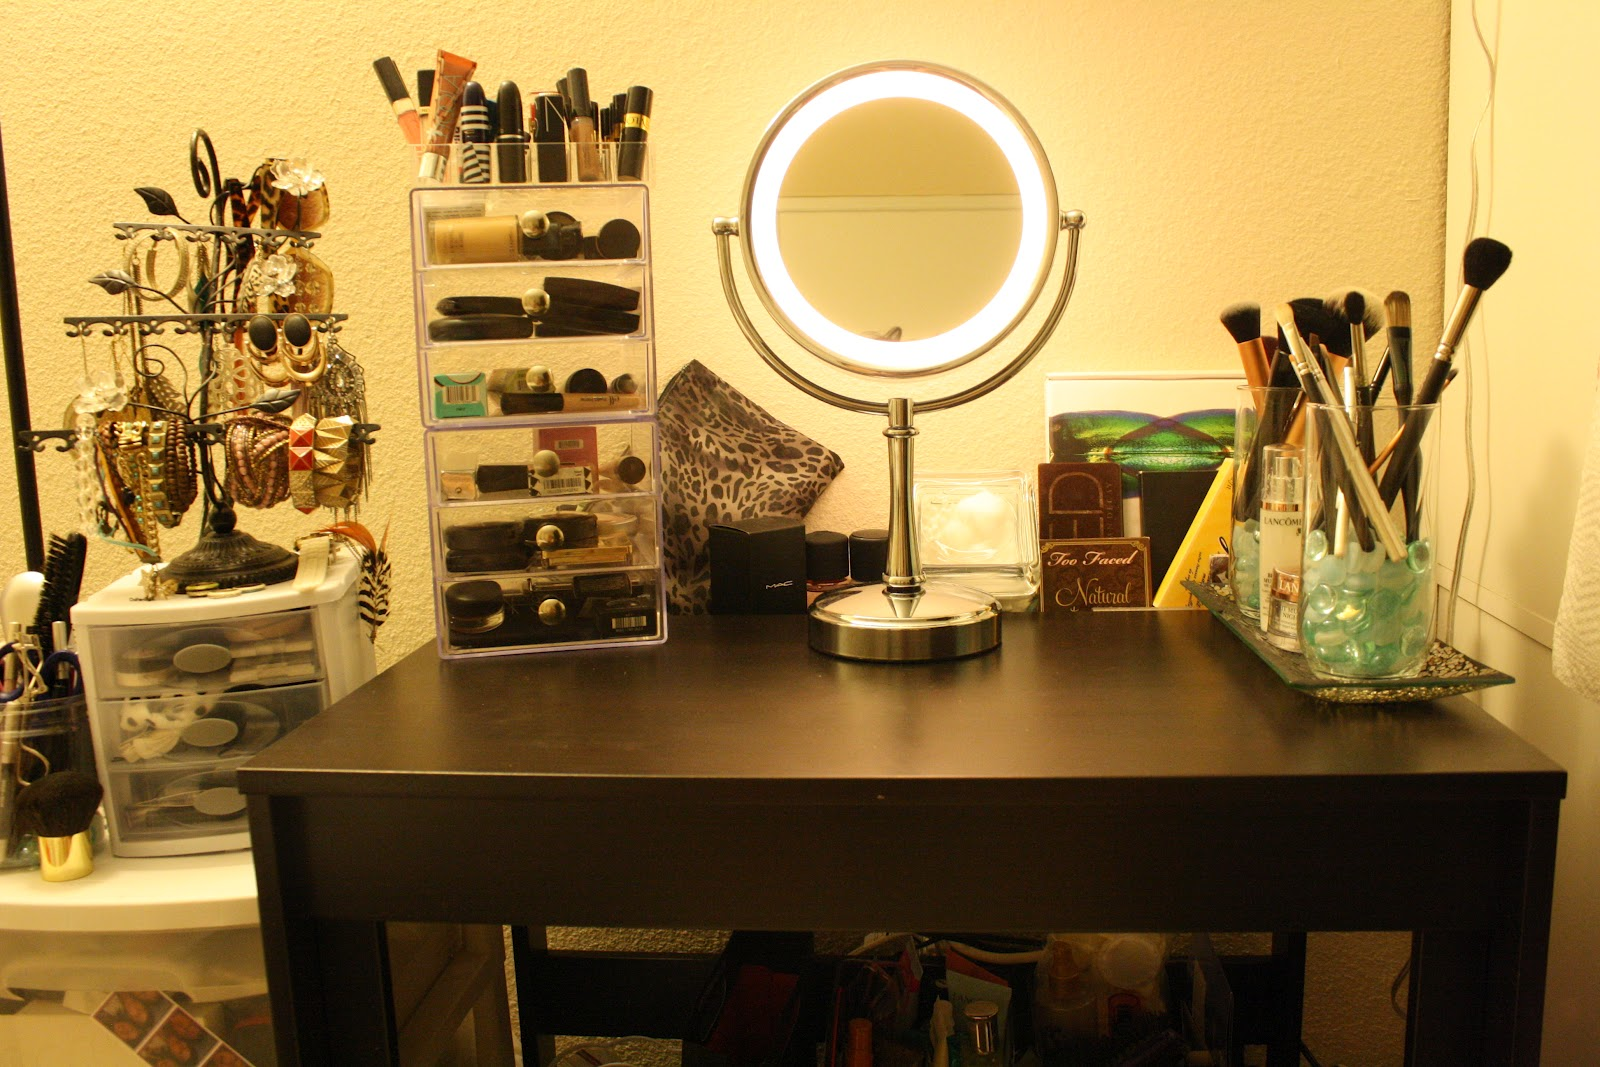 makeup vanity organization ideas. My makeup vanity  With organization tips Reviews on beauty advices